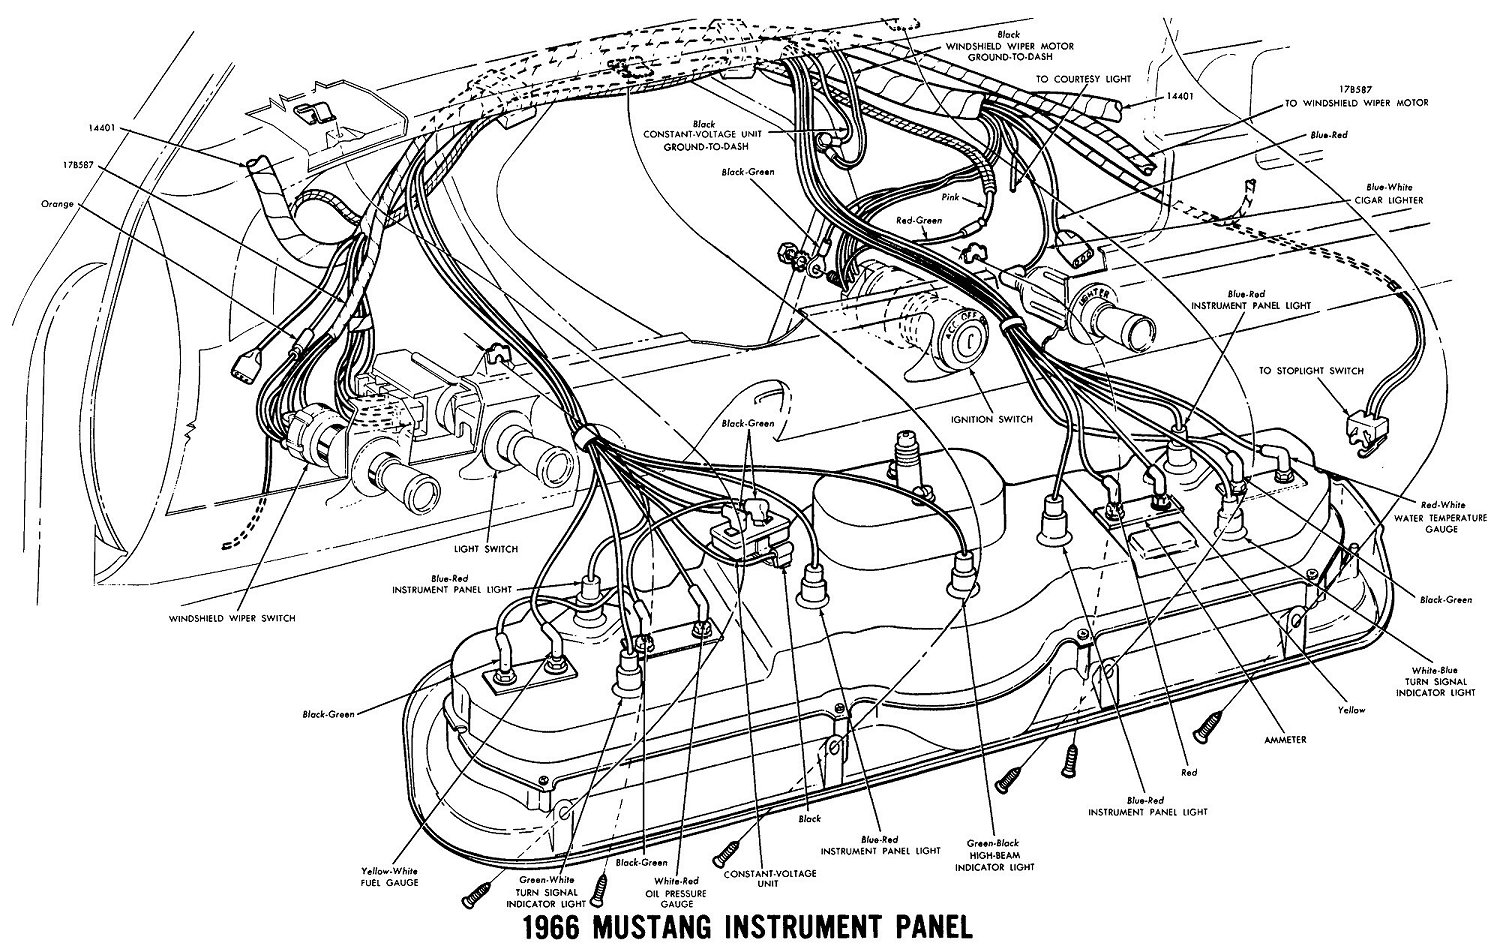 chevelle dash wiring diagram image 66 mustang wiring diagrams 66 wiring diagrams on 1965 chevelle dash wiring diagram